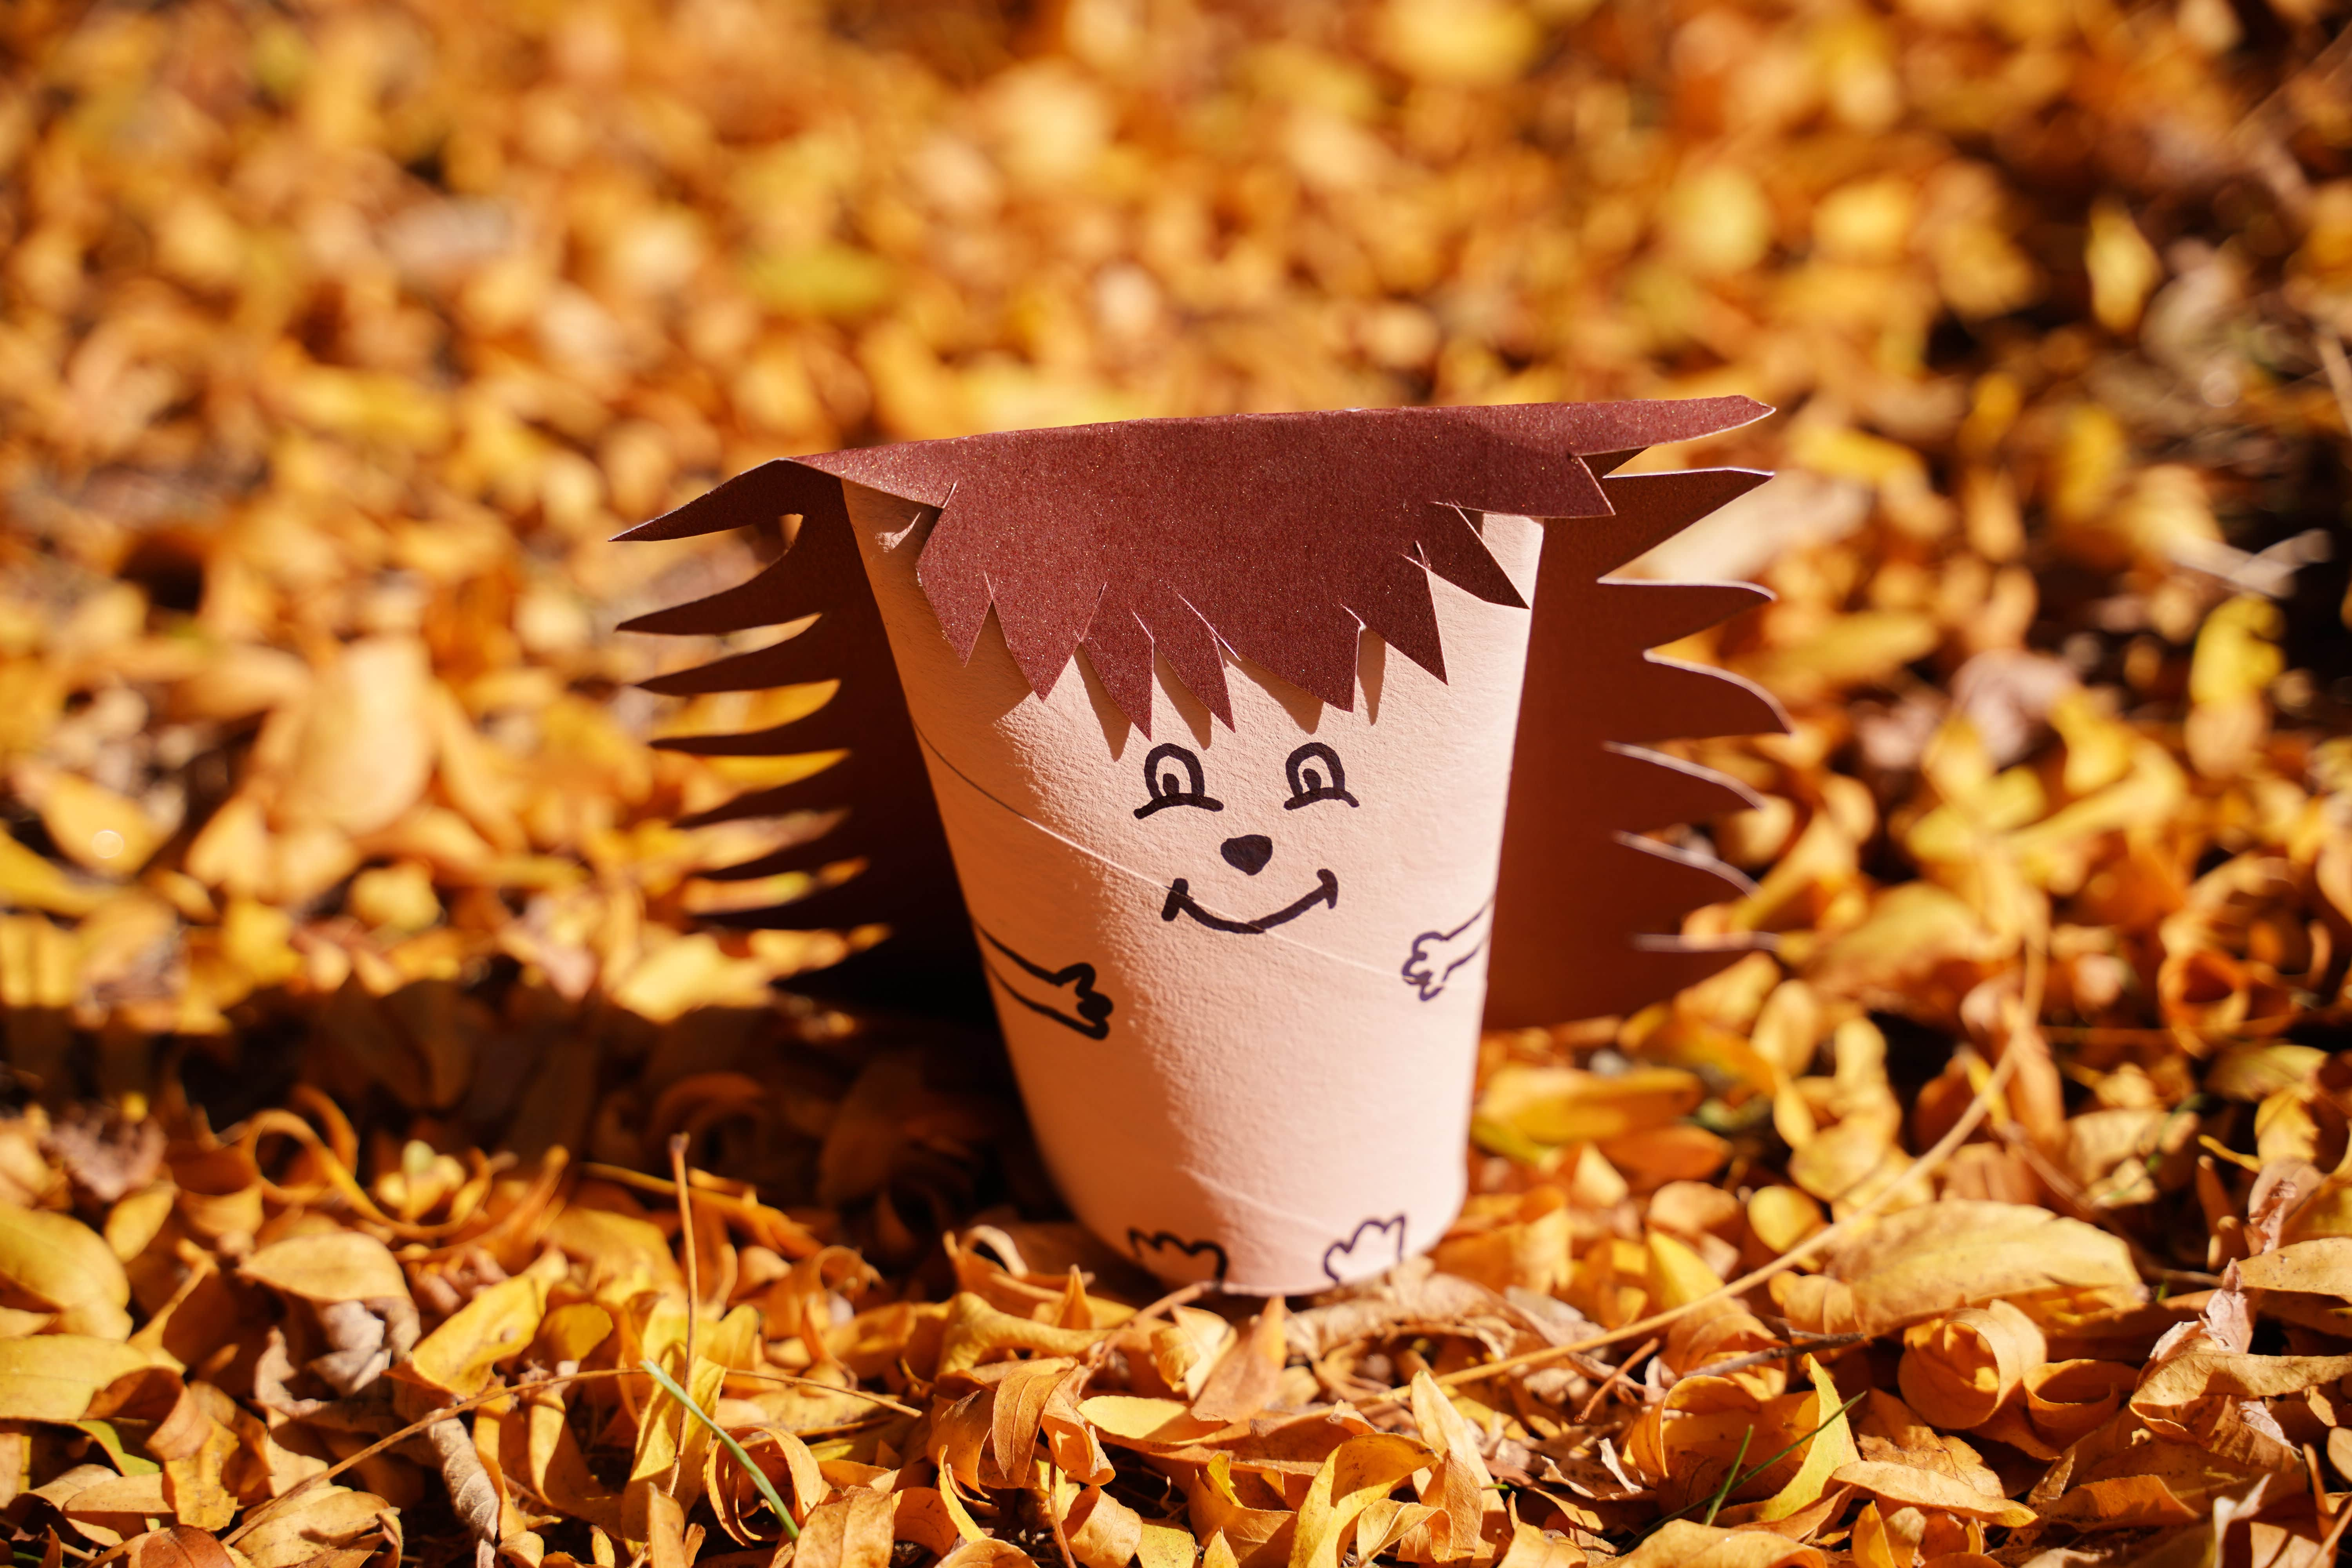 Paper roll hedgehog on yellow leaves